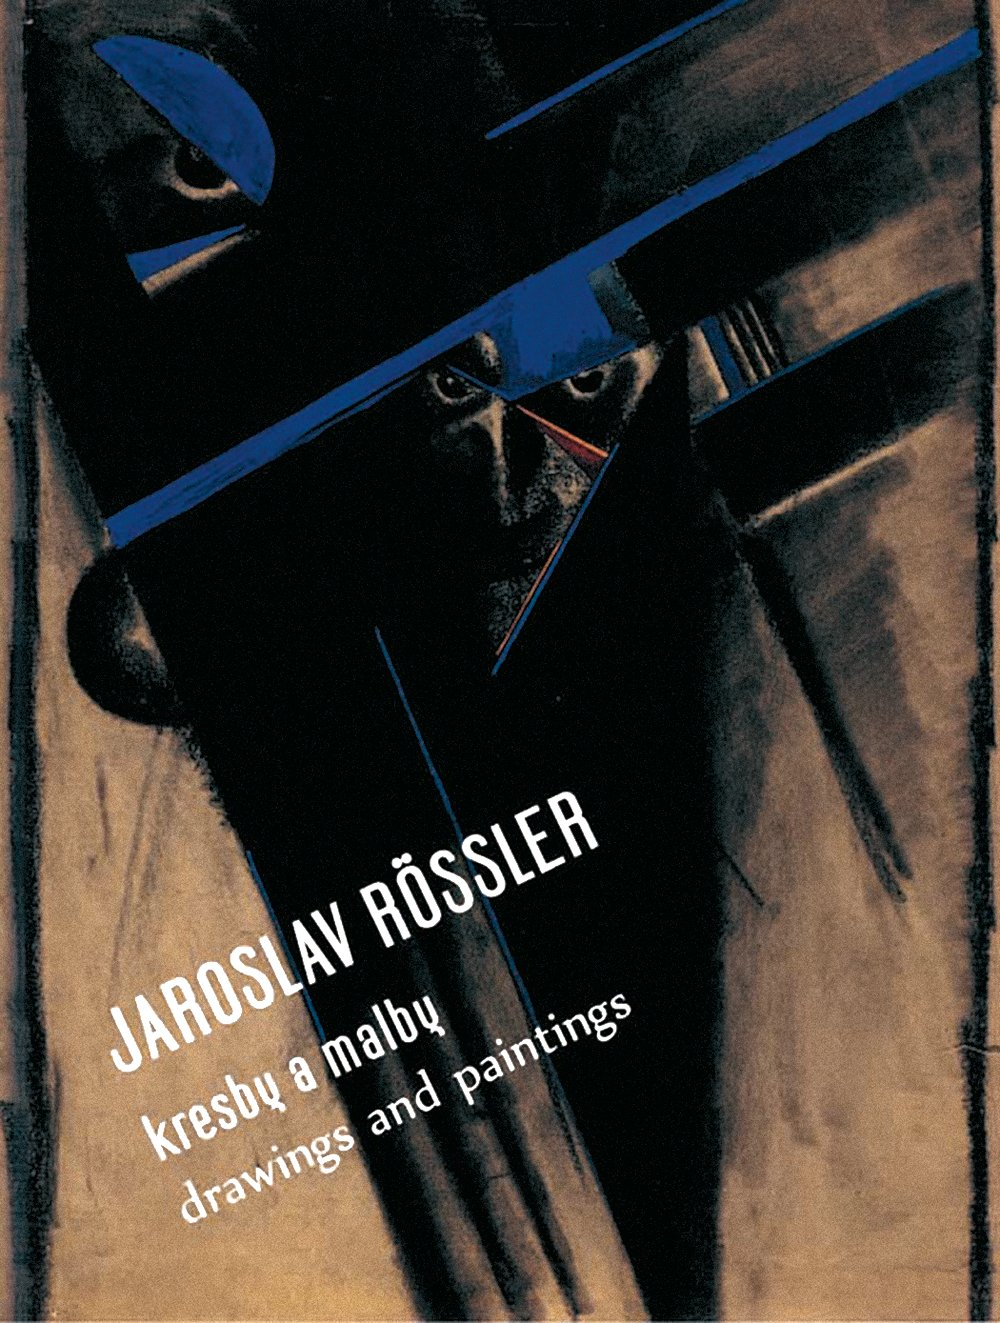 Jaroslav Rössler: Drawing and Paintings PDF